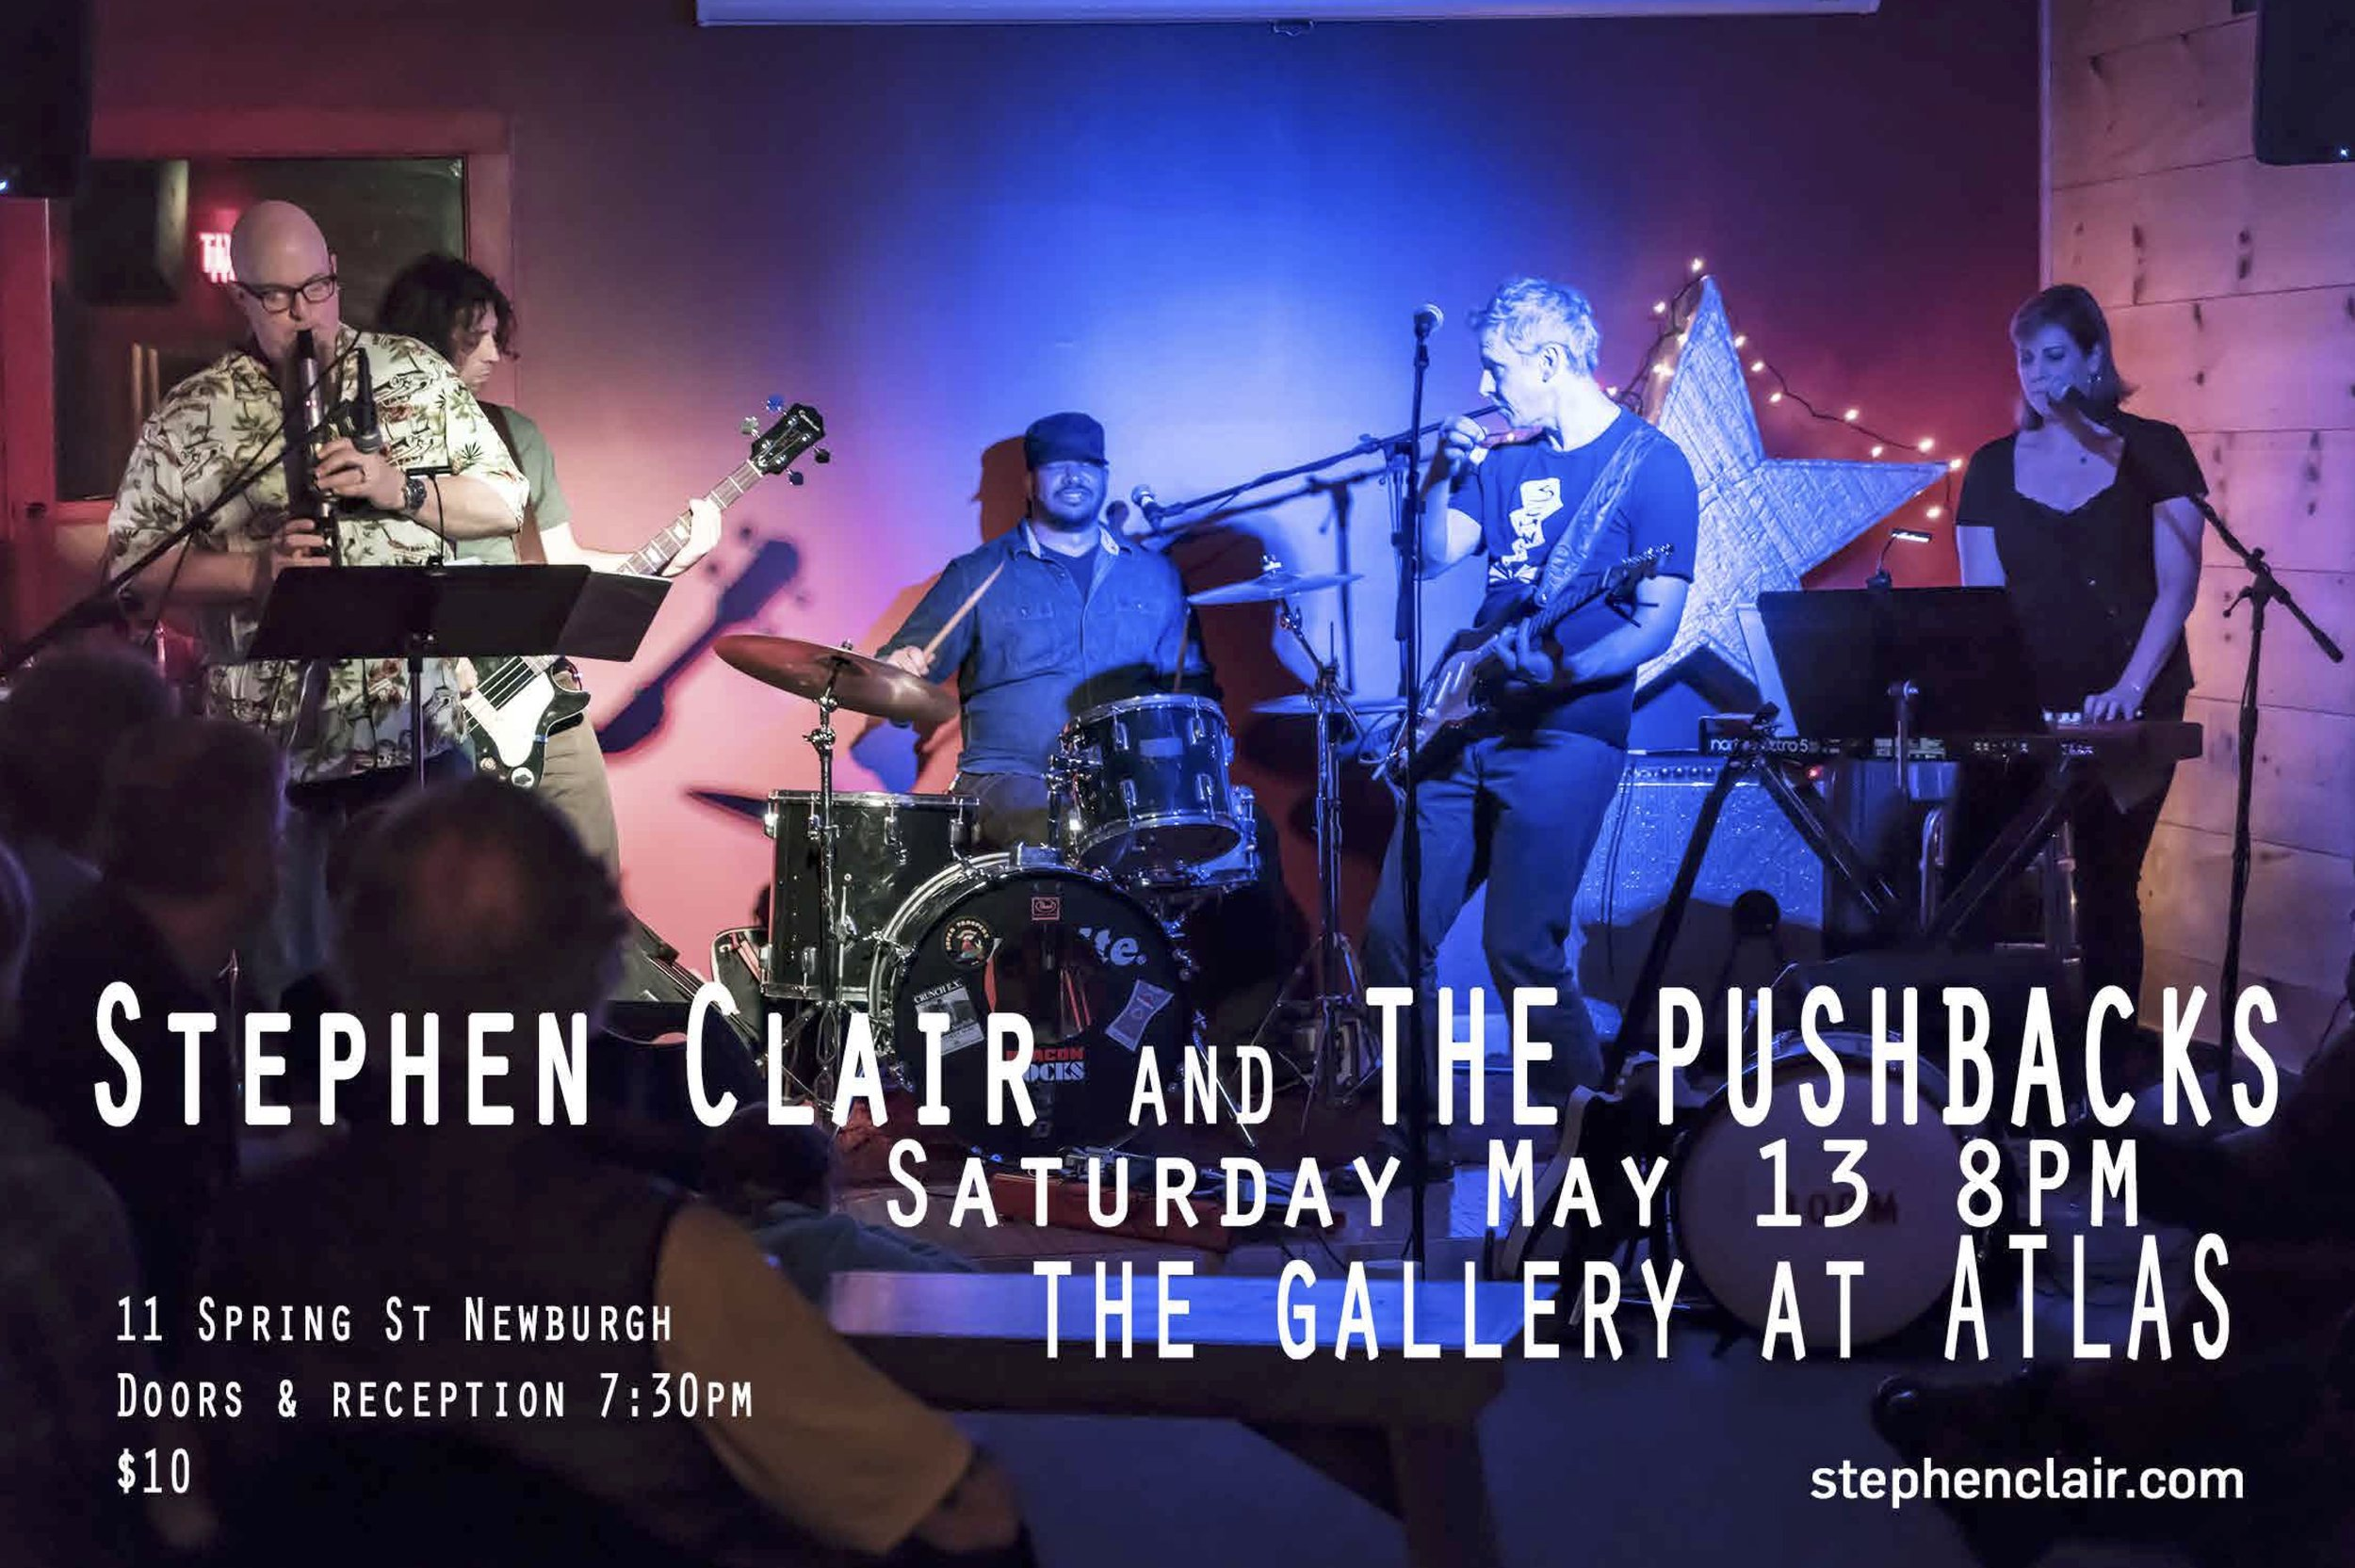 stephen clair and the pushbacks at atlas